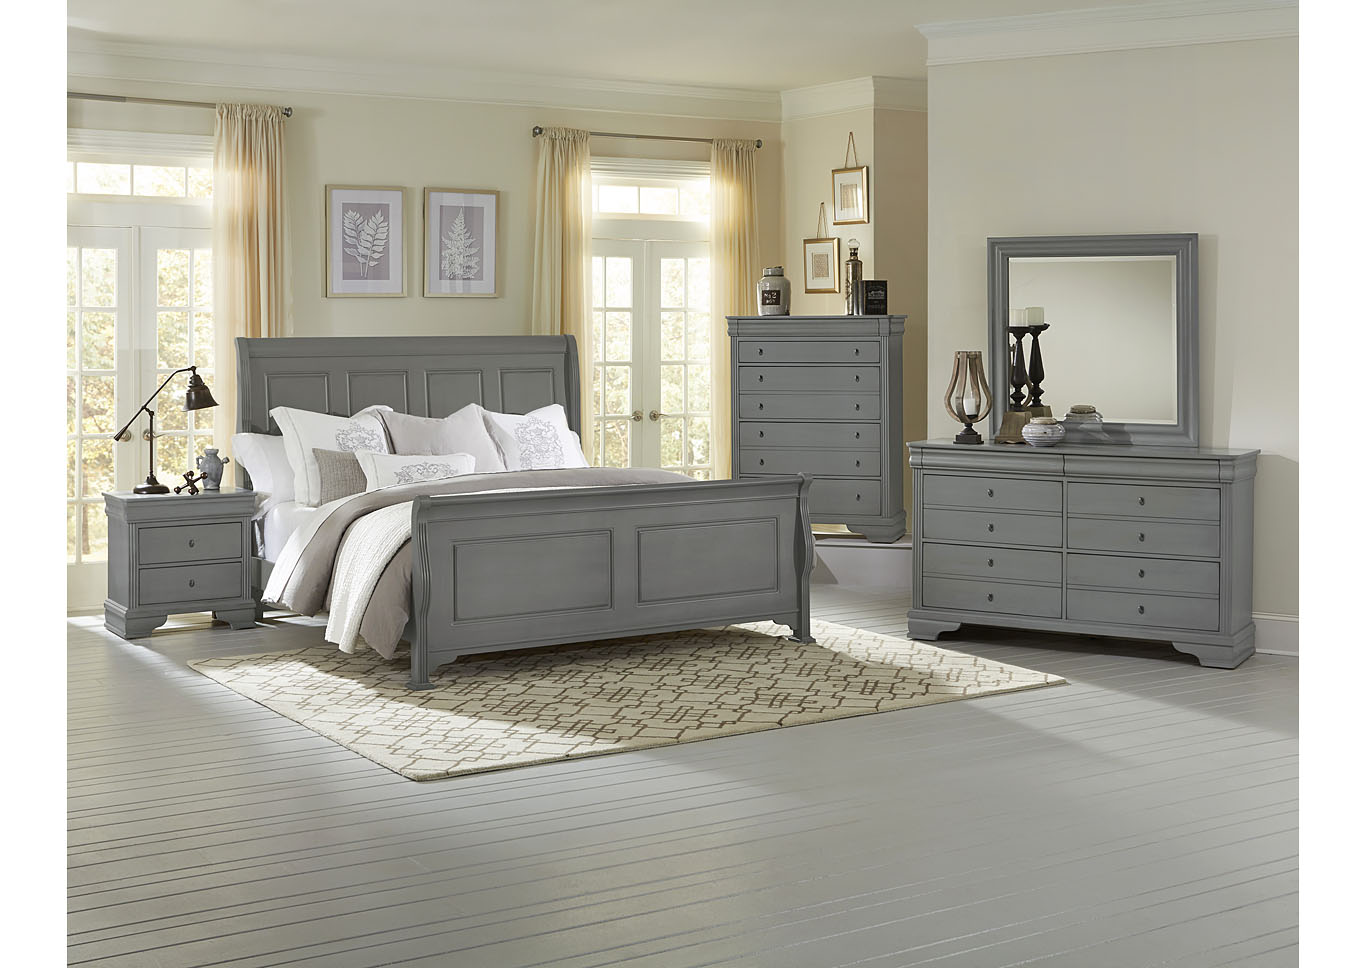 French Market Zinc King Poster Bed w/ Dresser, Mirror, Drawer Chest and Nightstand,Vaughan-Bassett